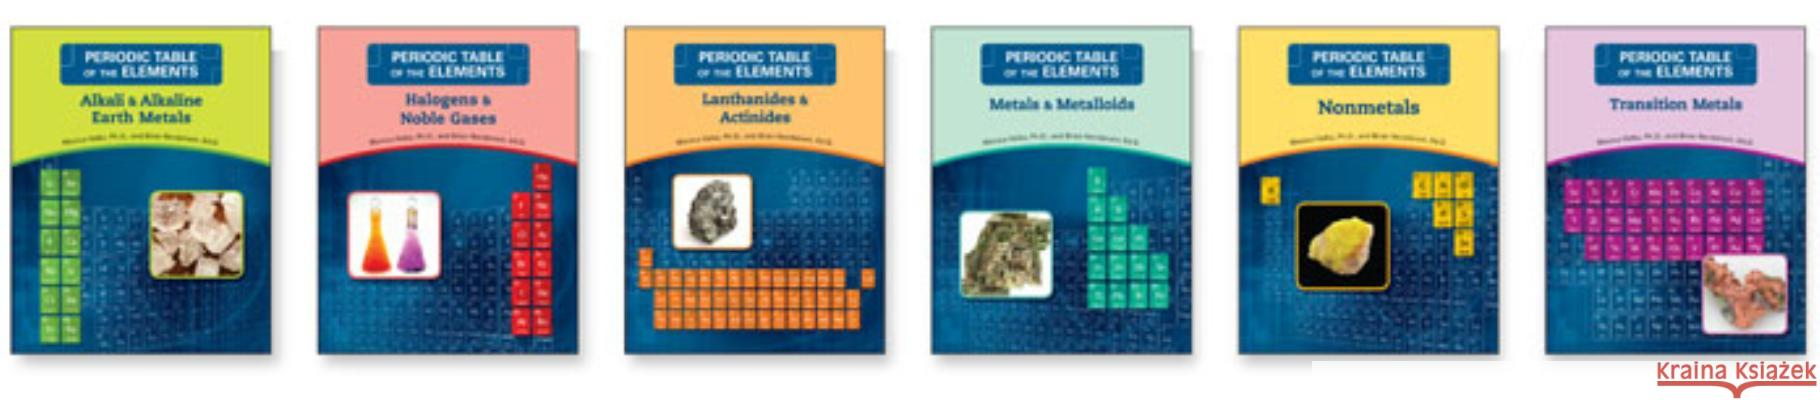 Periodic Table of the Elements Set Ph. D. Monic 9780816082995